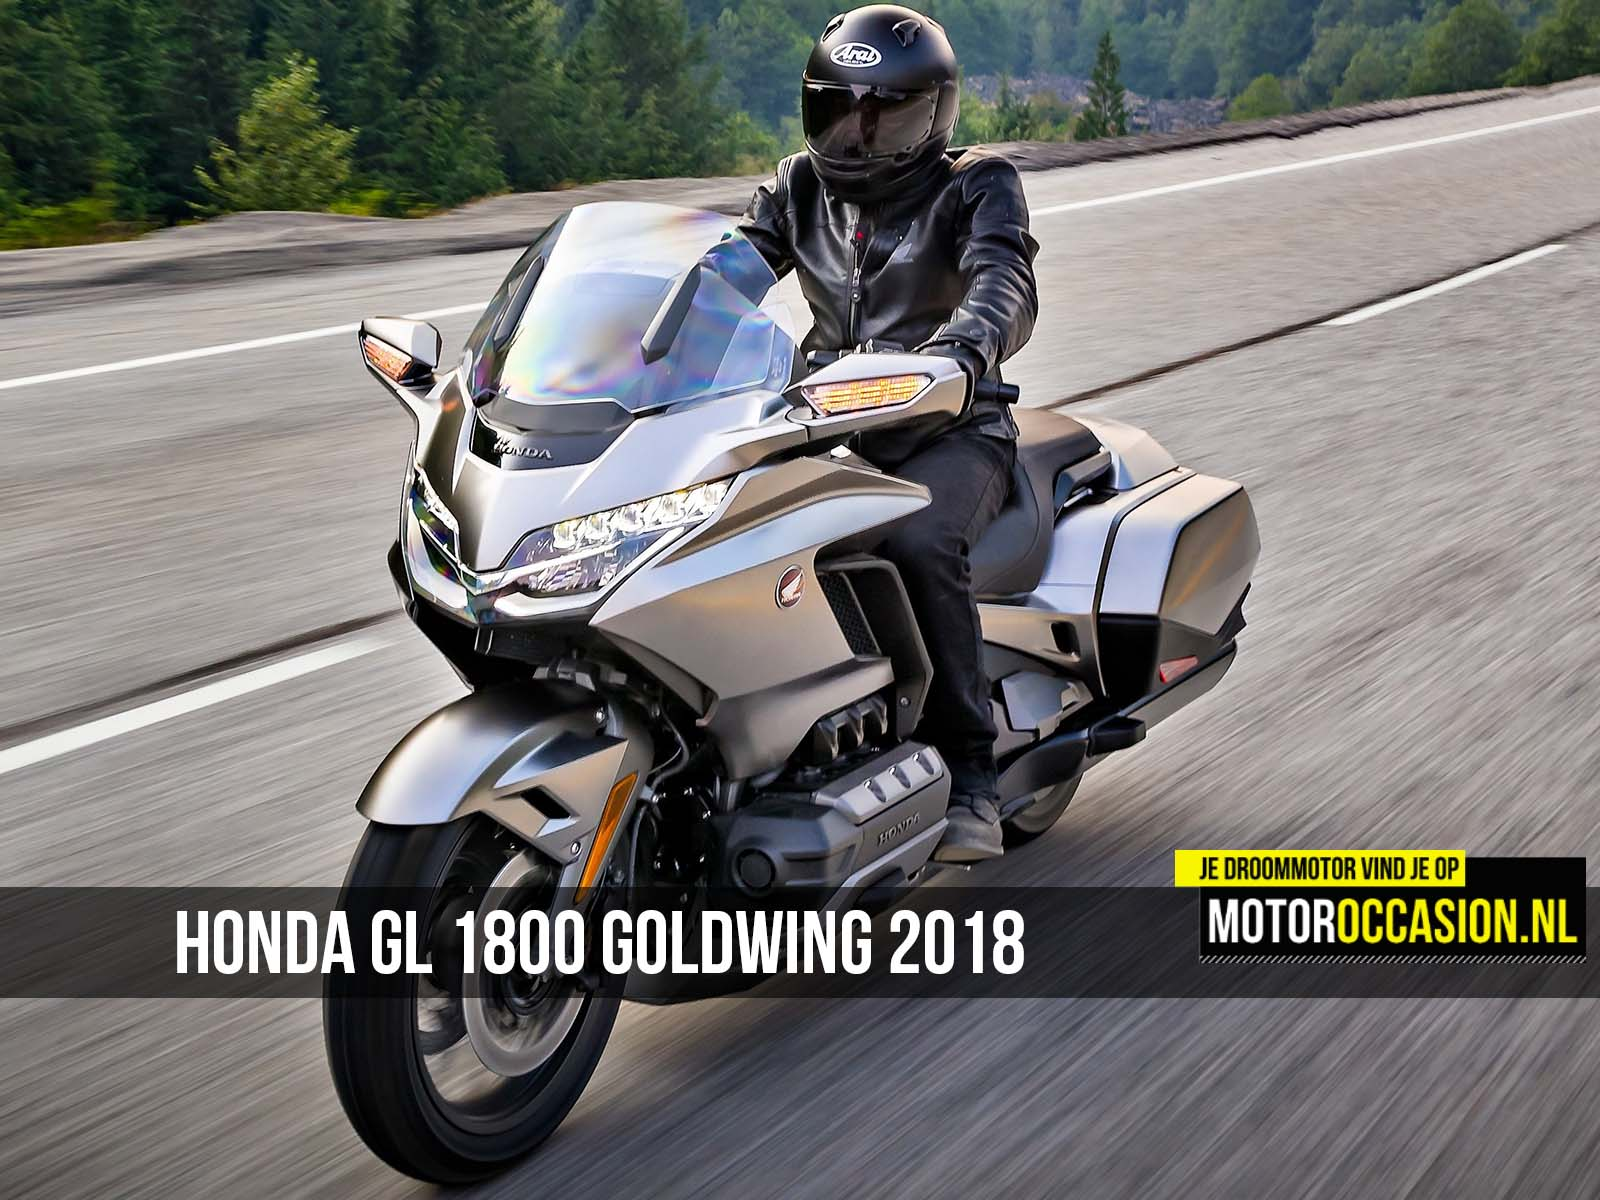 Motoroccasion.nl, Honda GL 1800 Goldwing 2018 is ...